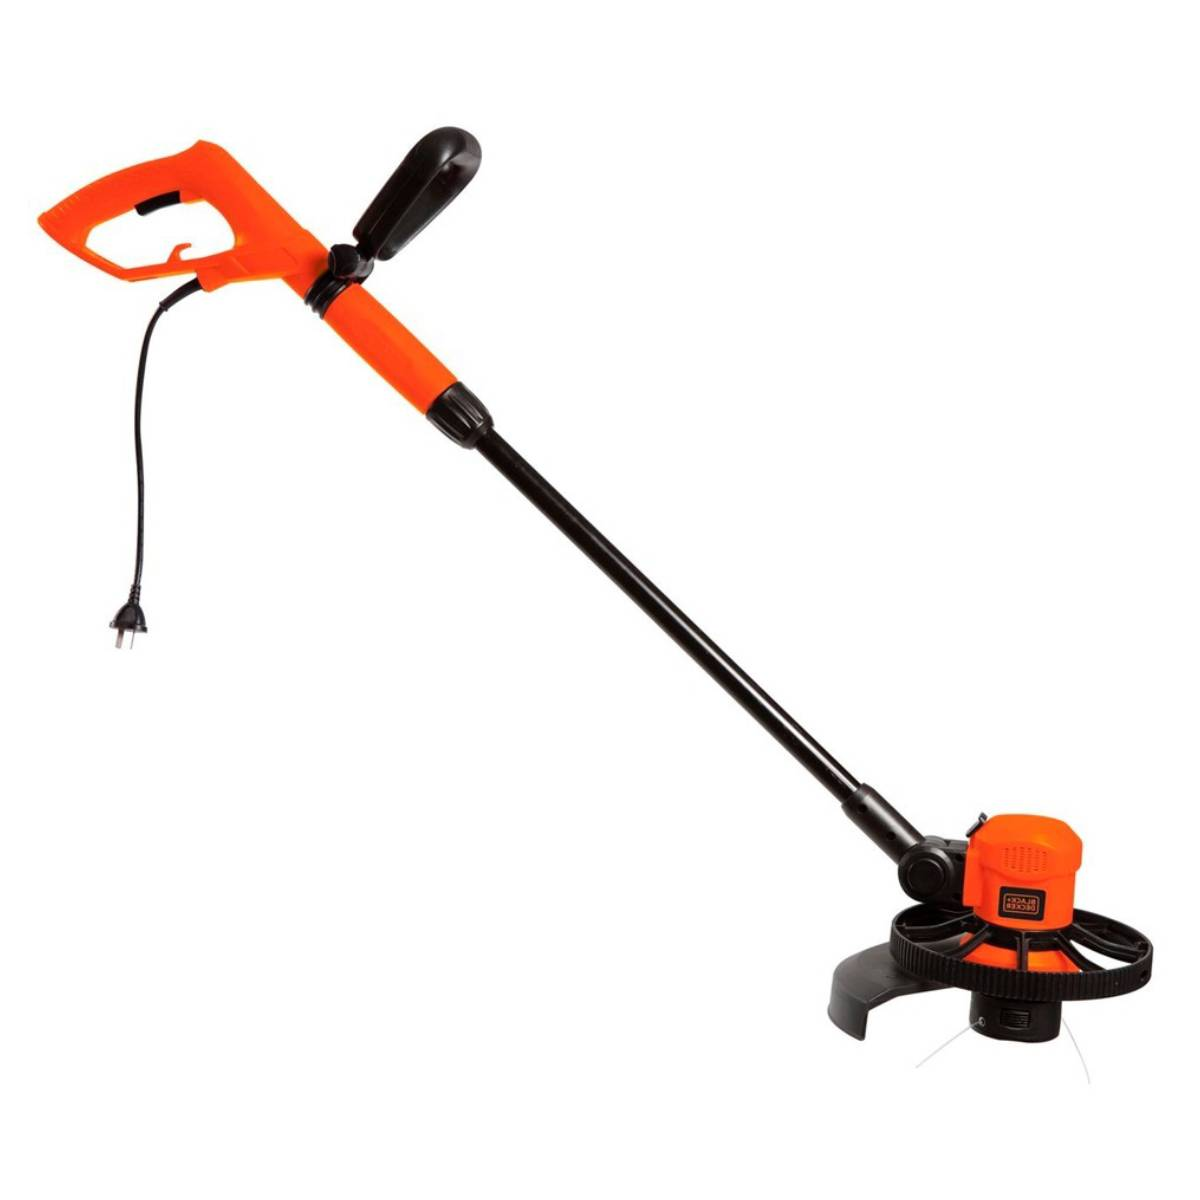 Podadora Desbrozadora Bordeadora 11 In 600w Black And Decker